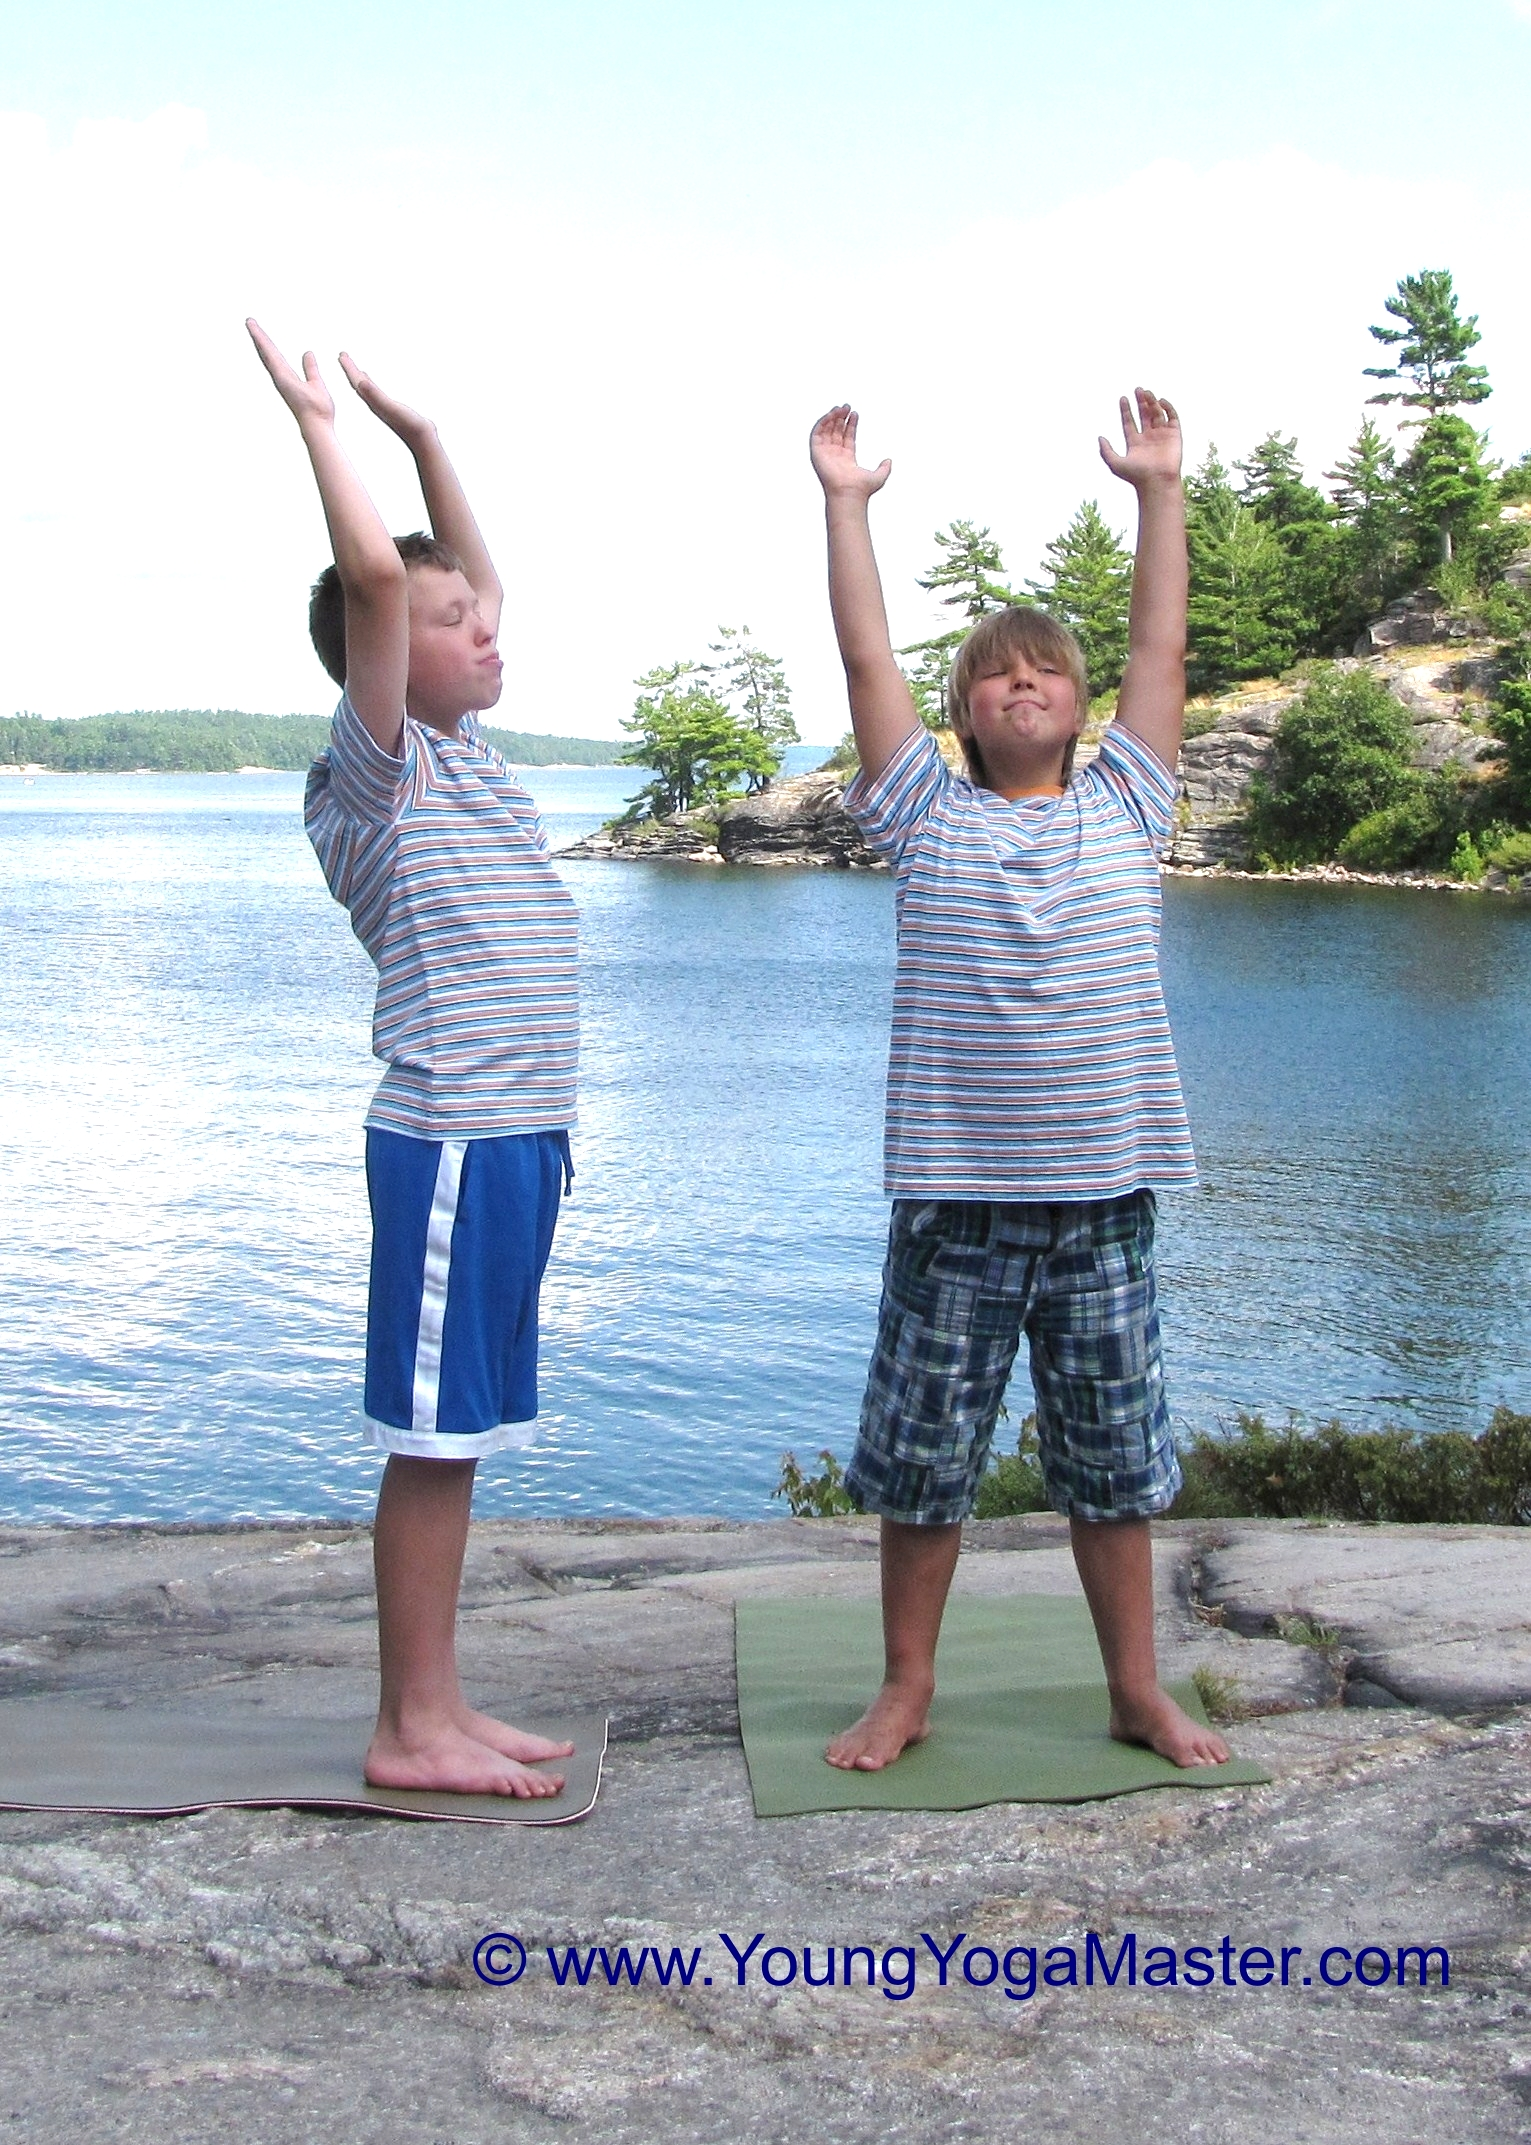 Boys doing Yoga